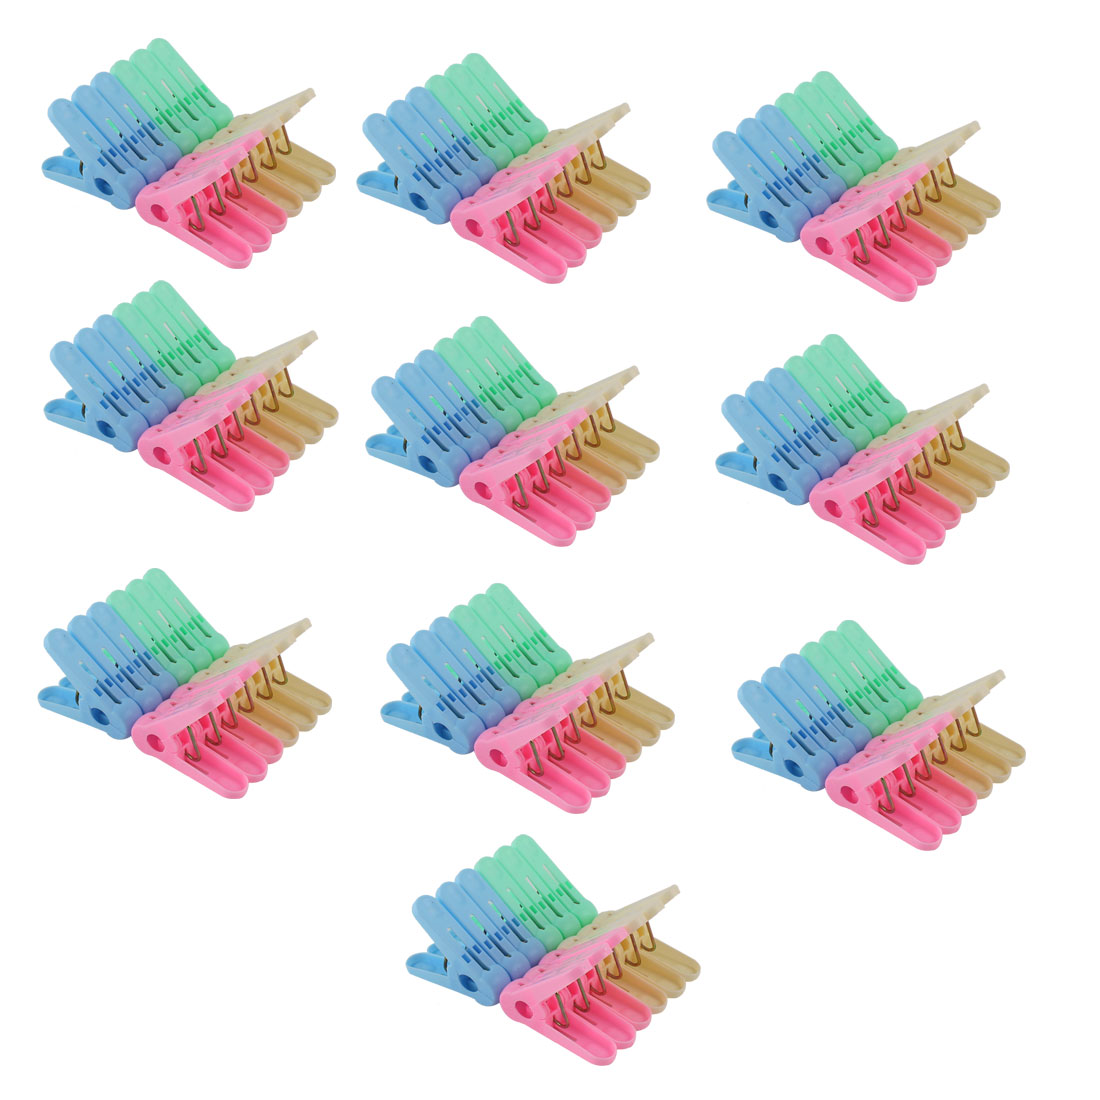 Household Plastic Socks Towel Clothing Clothes Clips Clamp Clothespin Assorted Color 120pcs